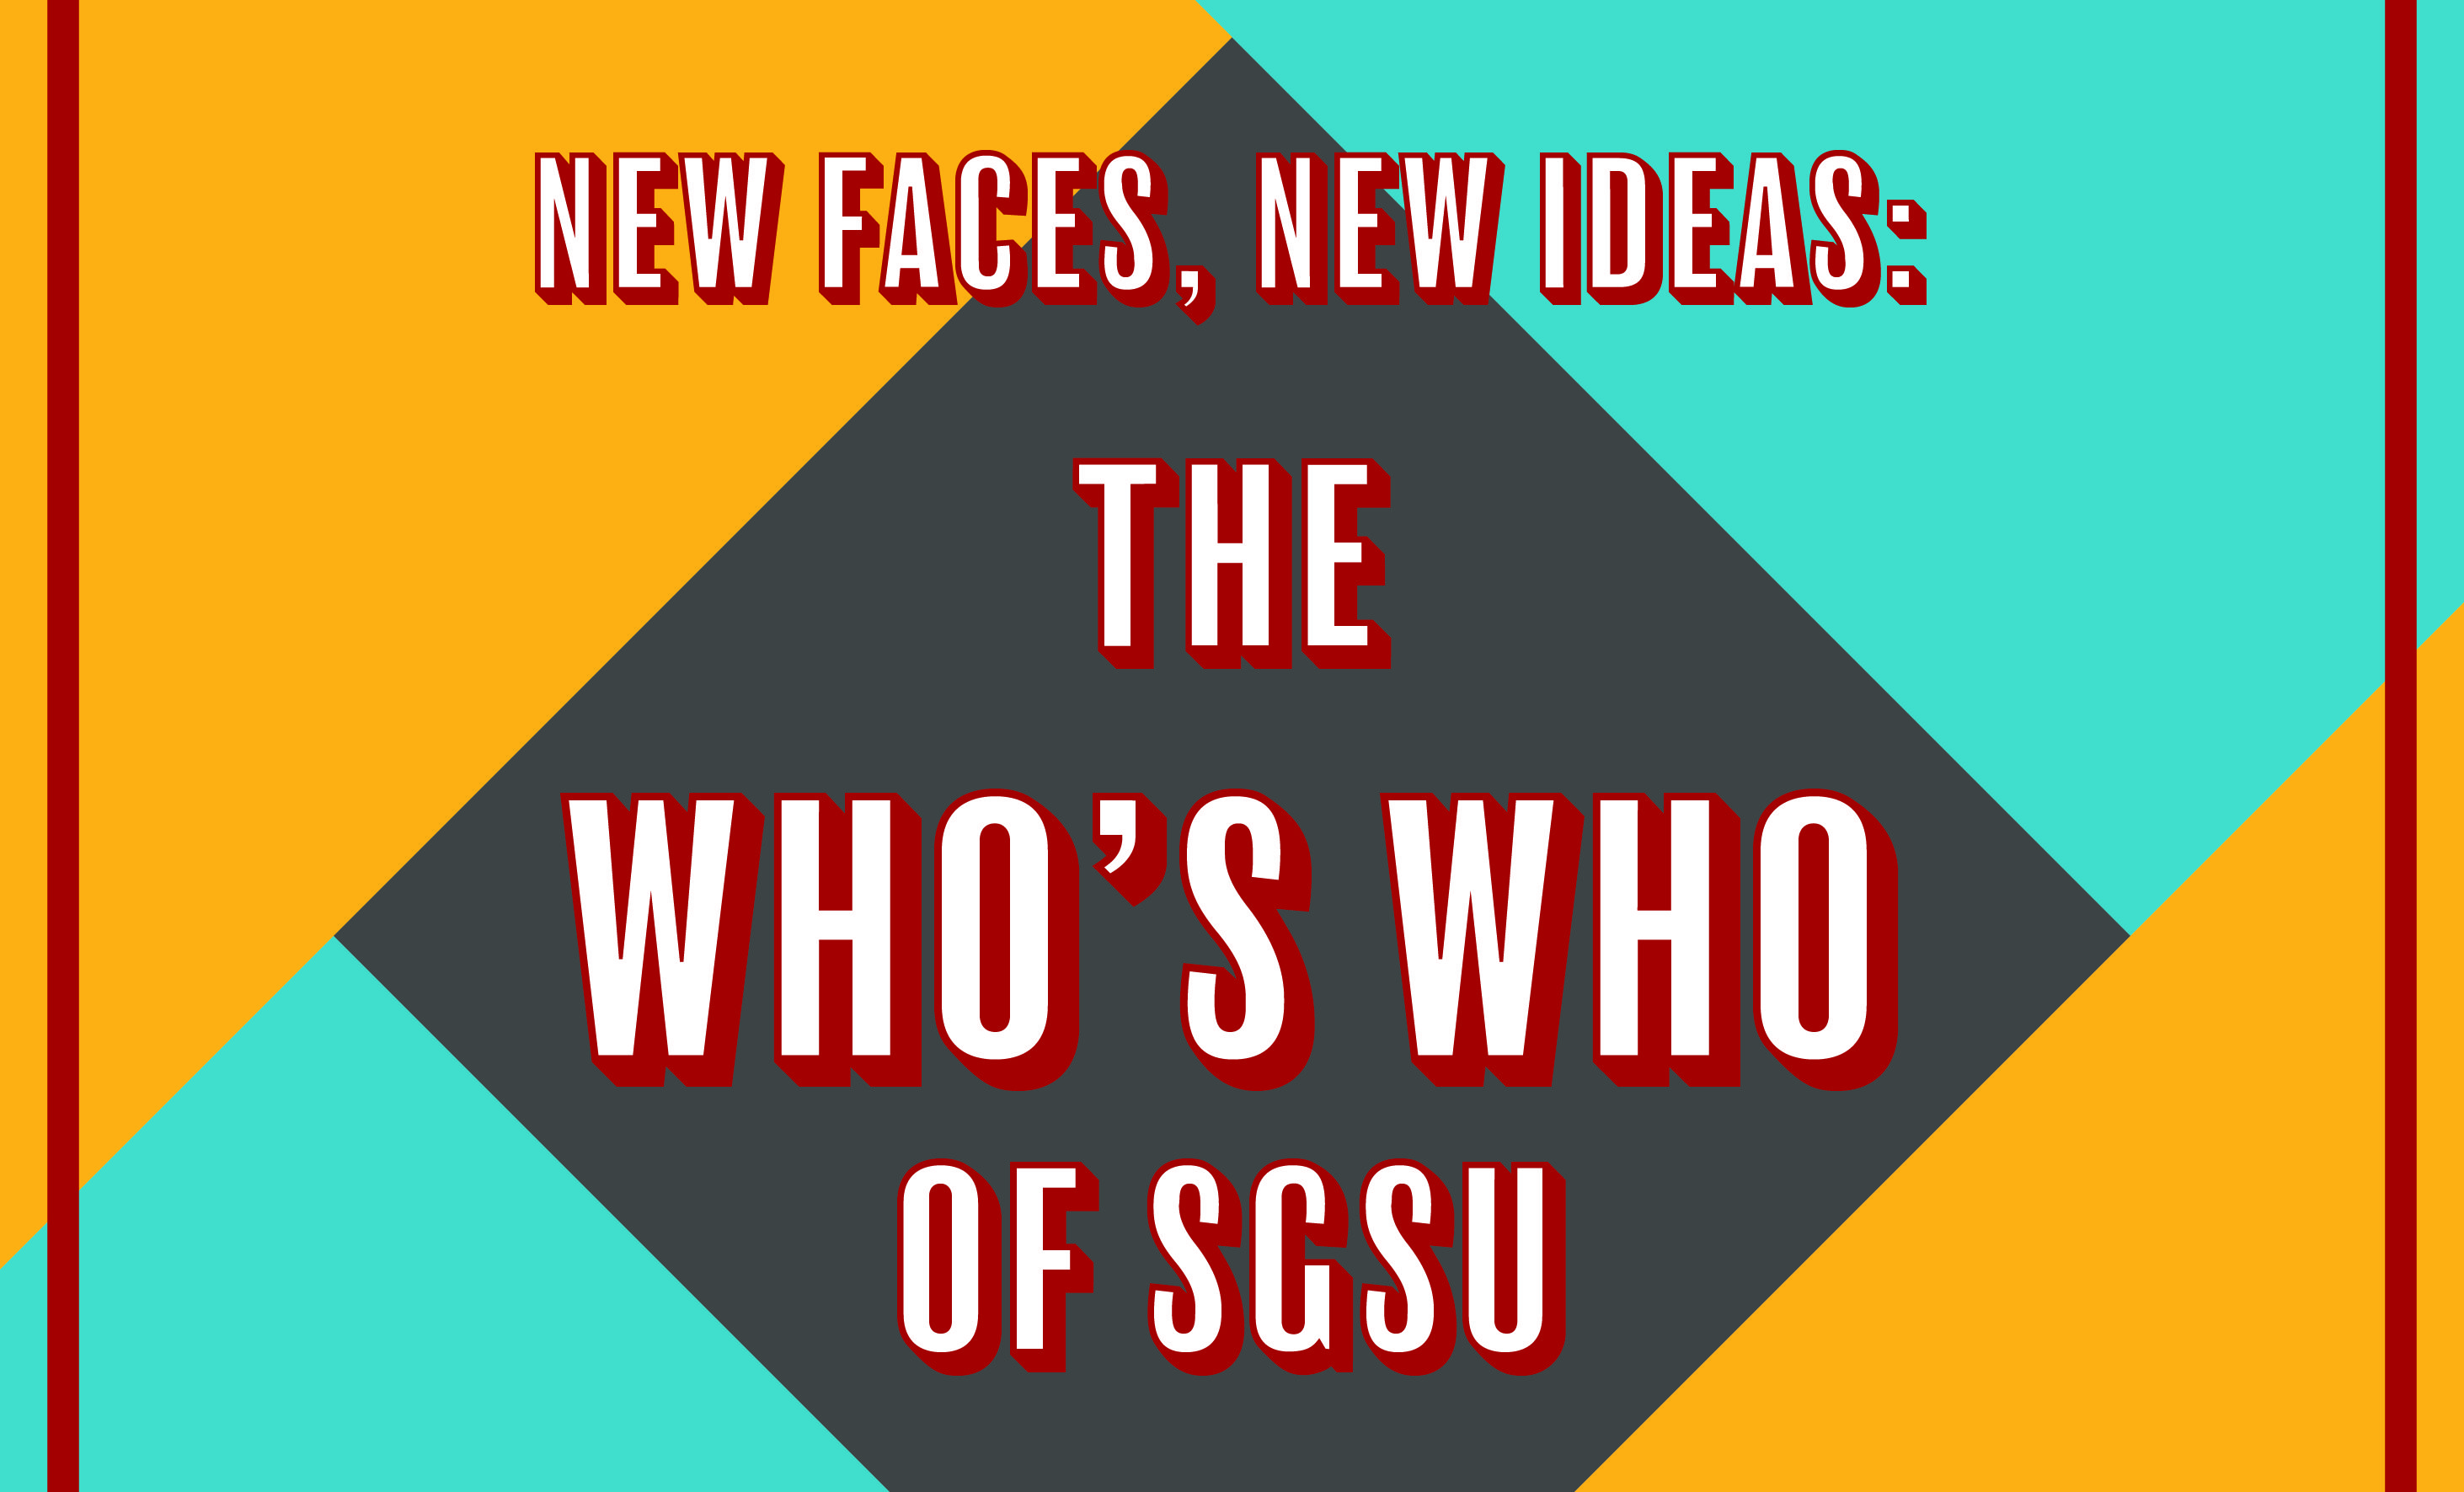 New Faces, New Ideas: The Who's Who of SGSU